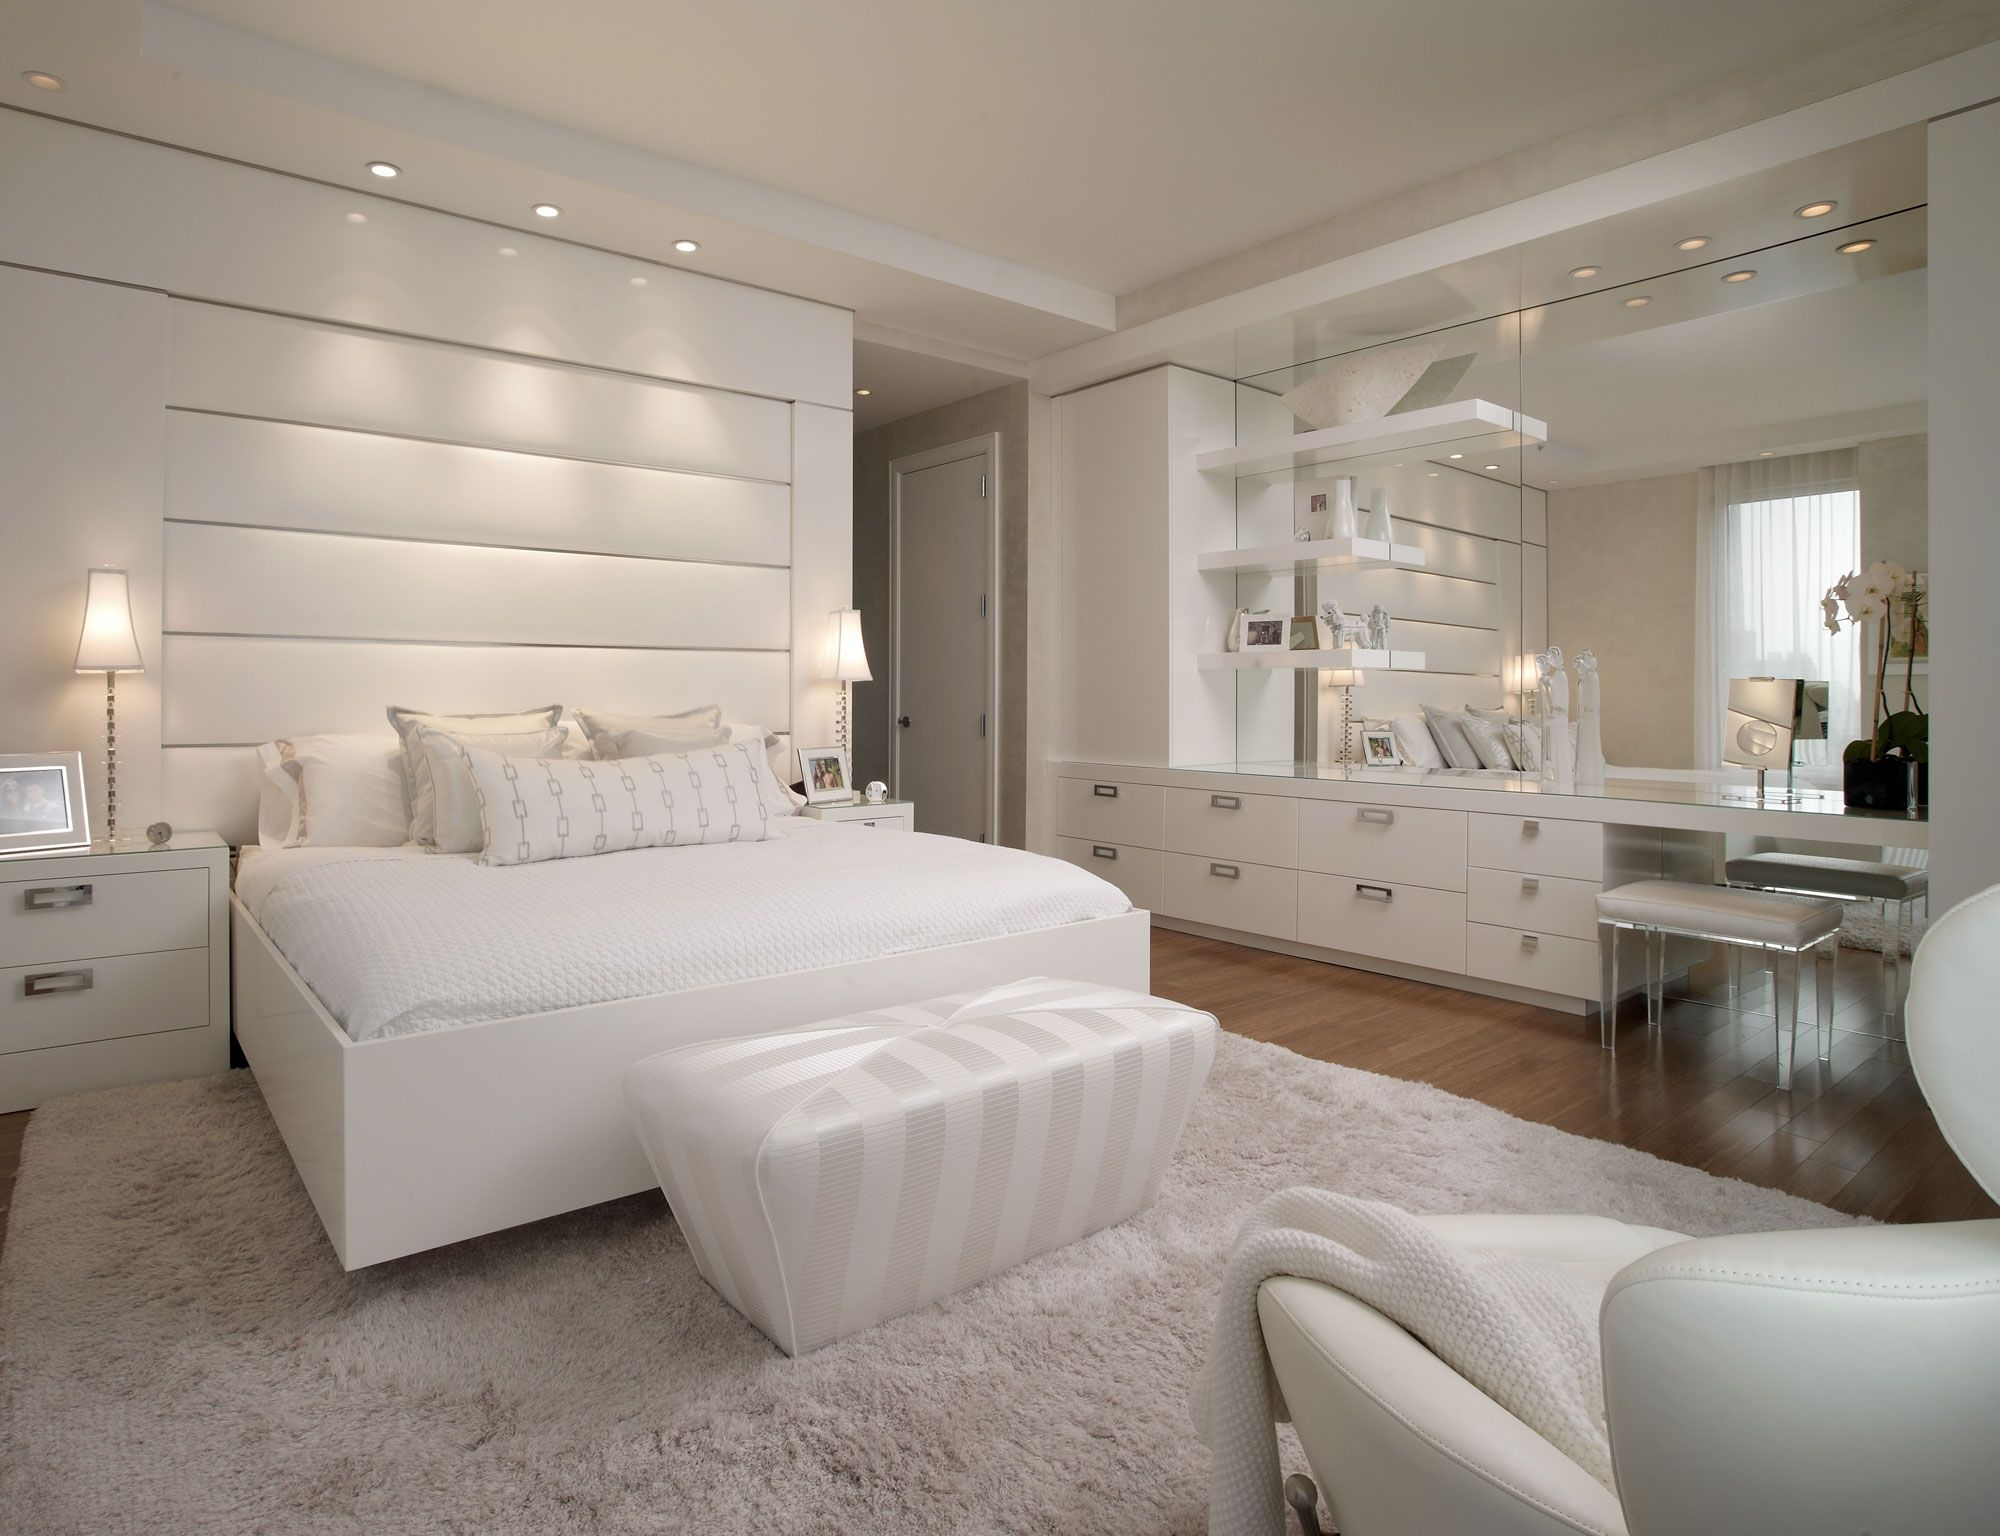 Luxury all white bedroom decorating ideas amazing for Modern master bedroom ideas pinterest